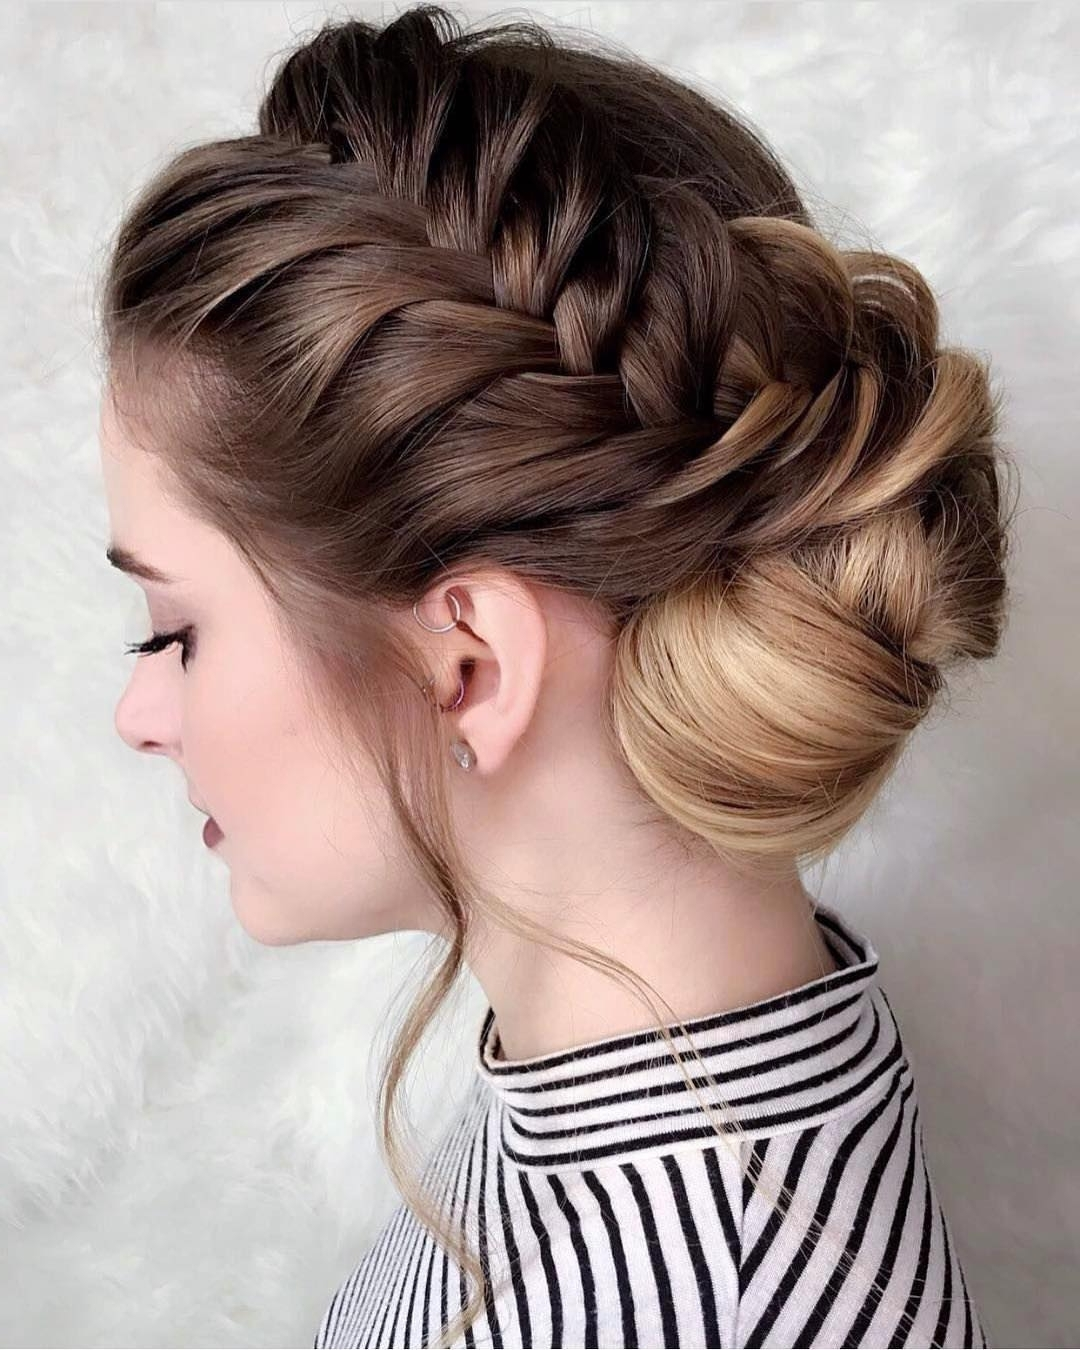 Well Liked Regal Braided Up Do Ponytail Hairstyles Regarding 10 New Prom Updo Hair Styles For 2018 – Gorgeously Creative New Looks (View 17 of 20)